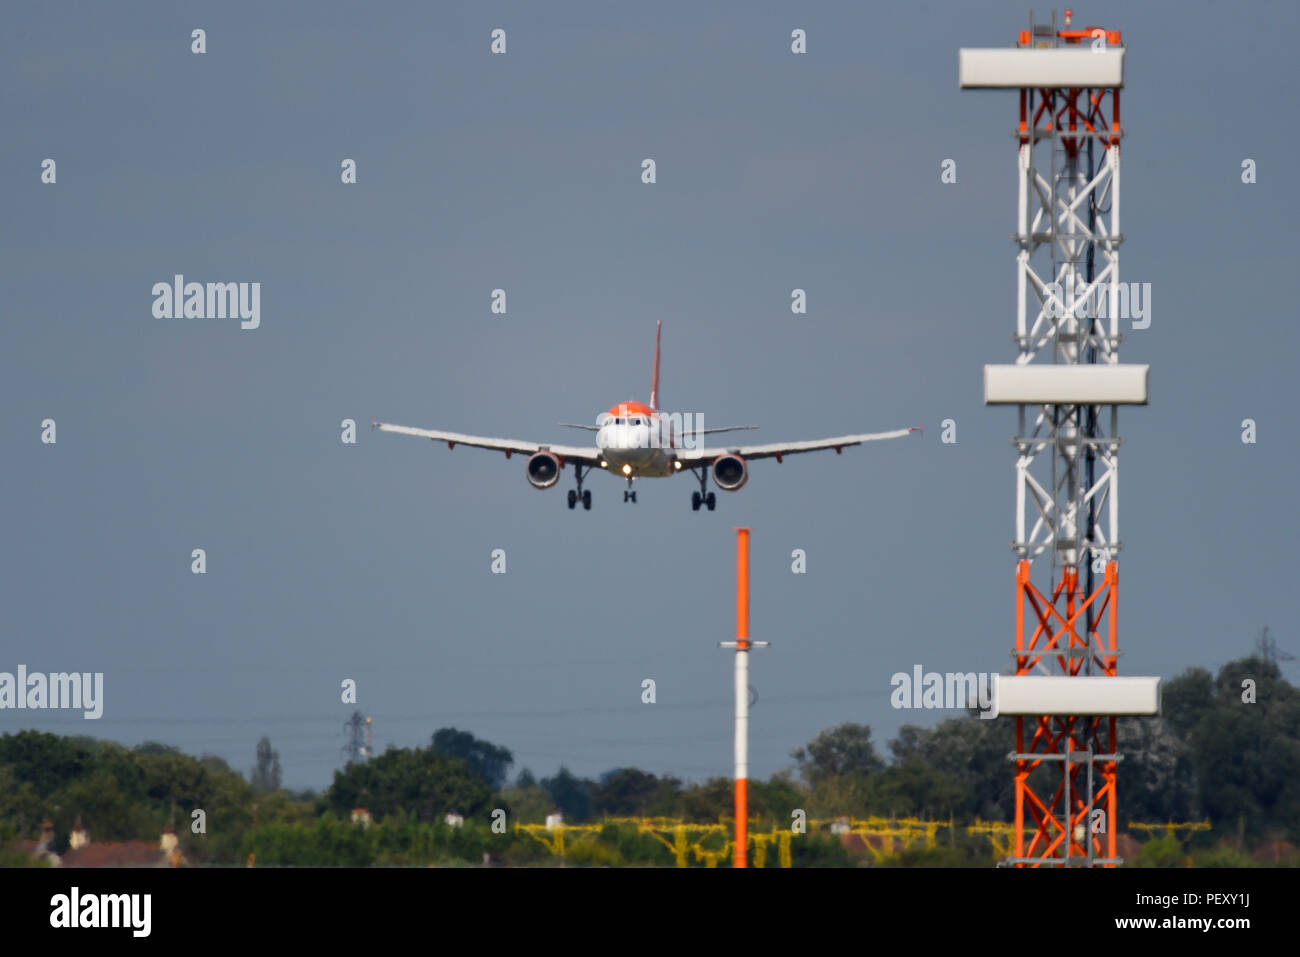 easyJet Airbus landing at London Southend Airport with ILS Glide slope tower landing system masts. Instrument Landing System infrastructure - Stock Image